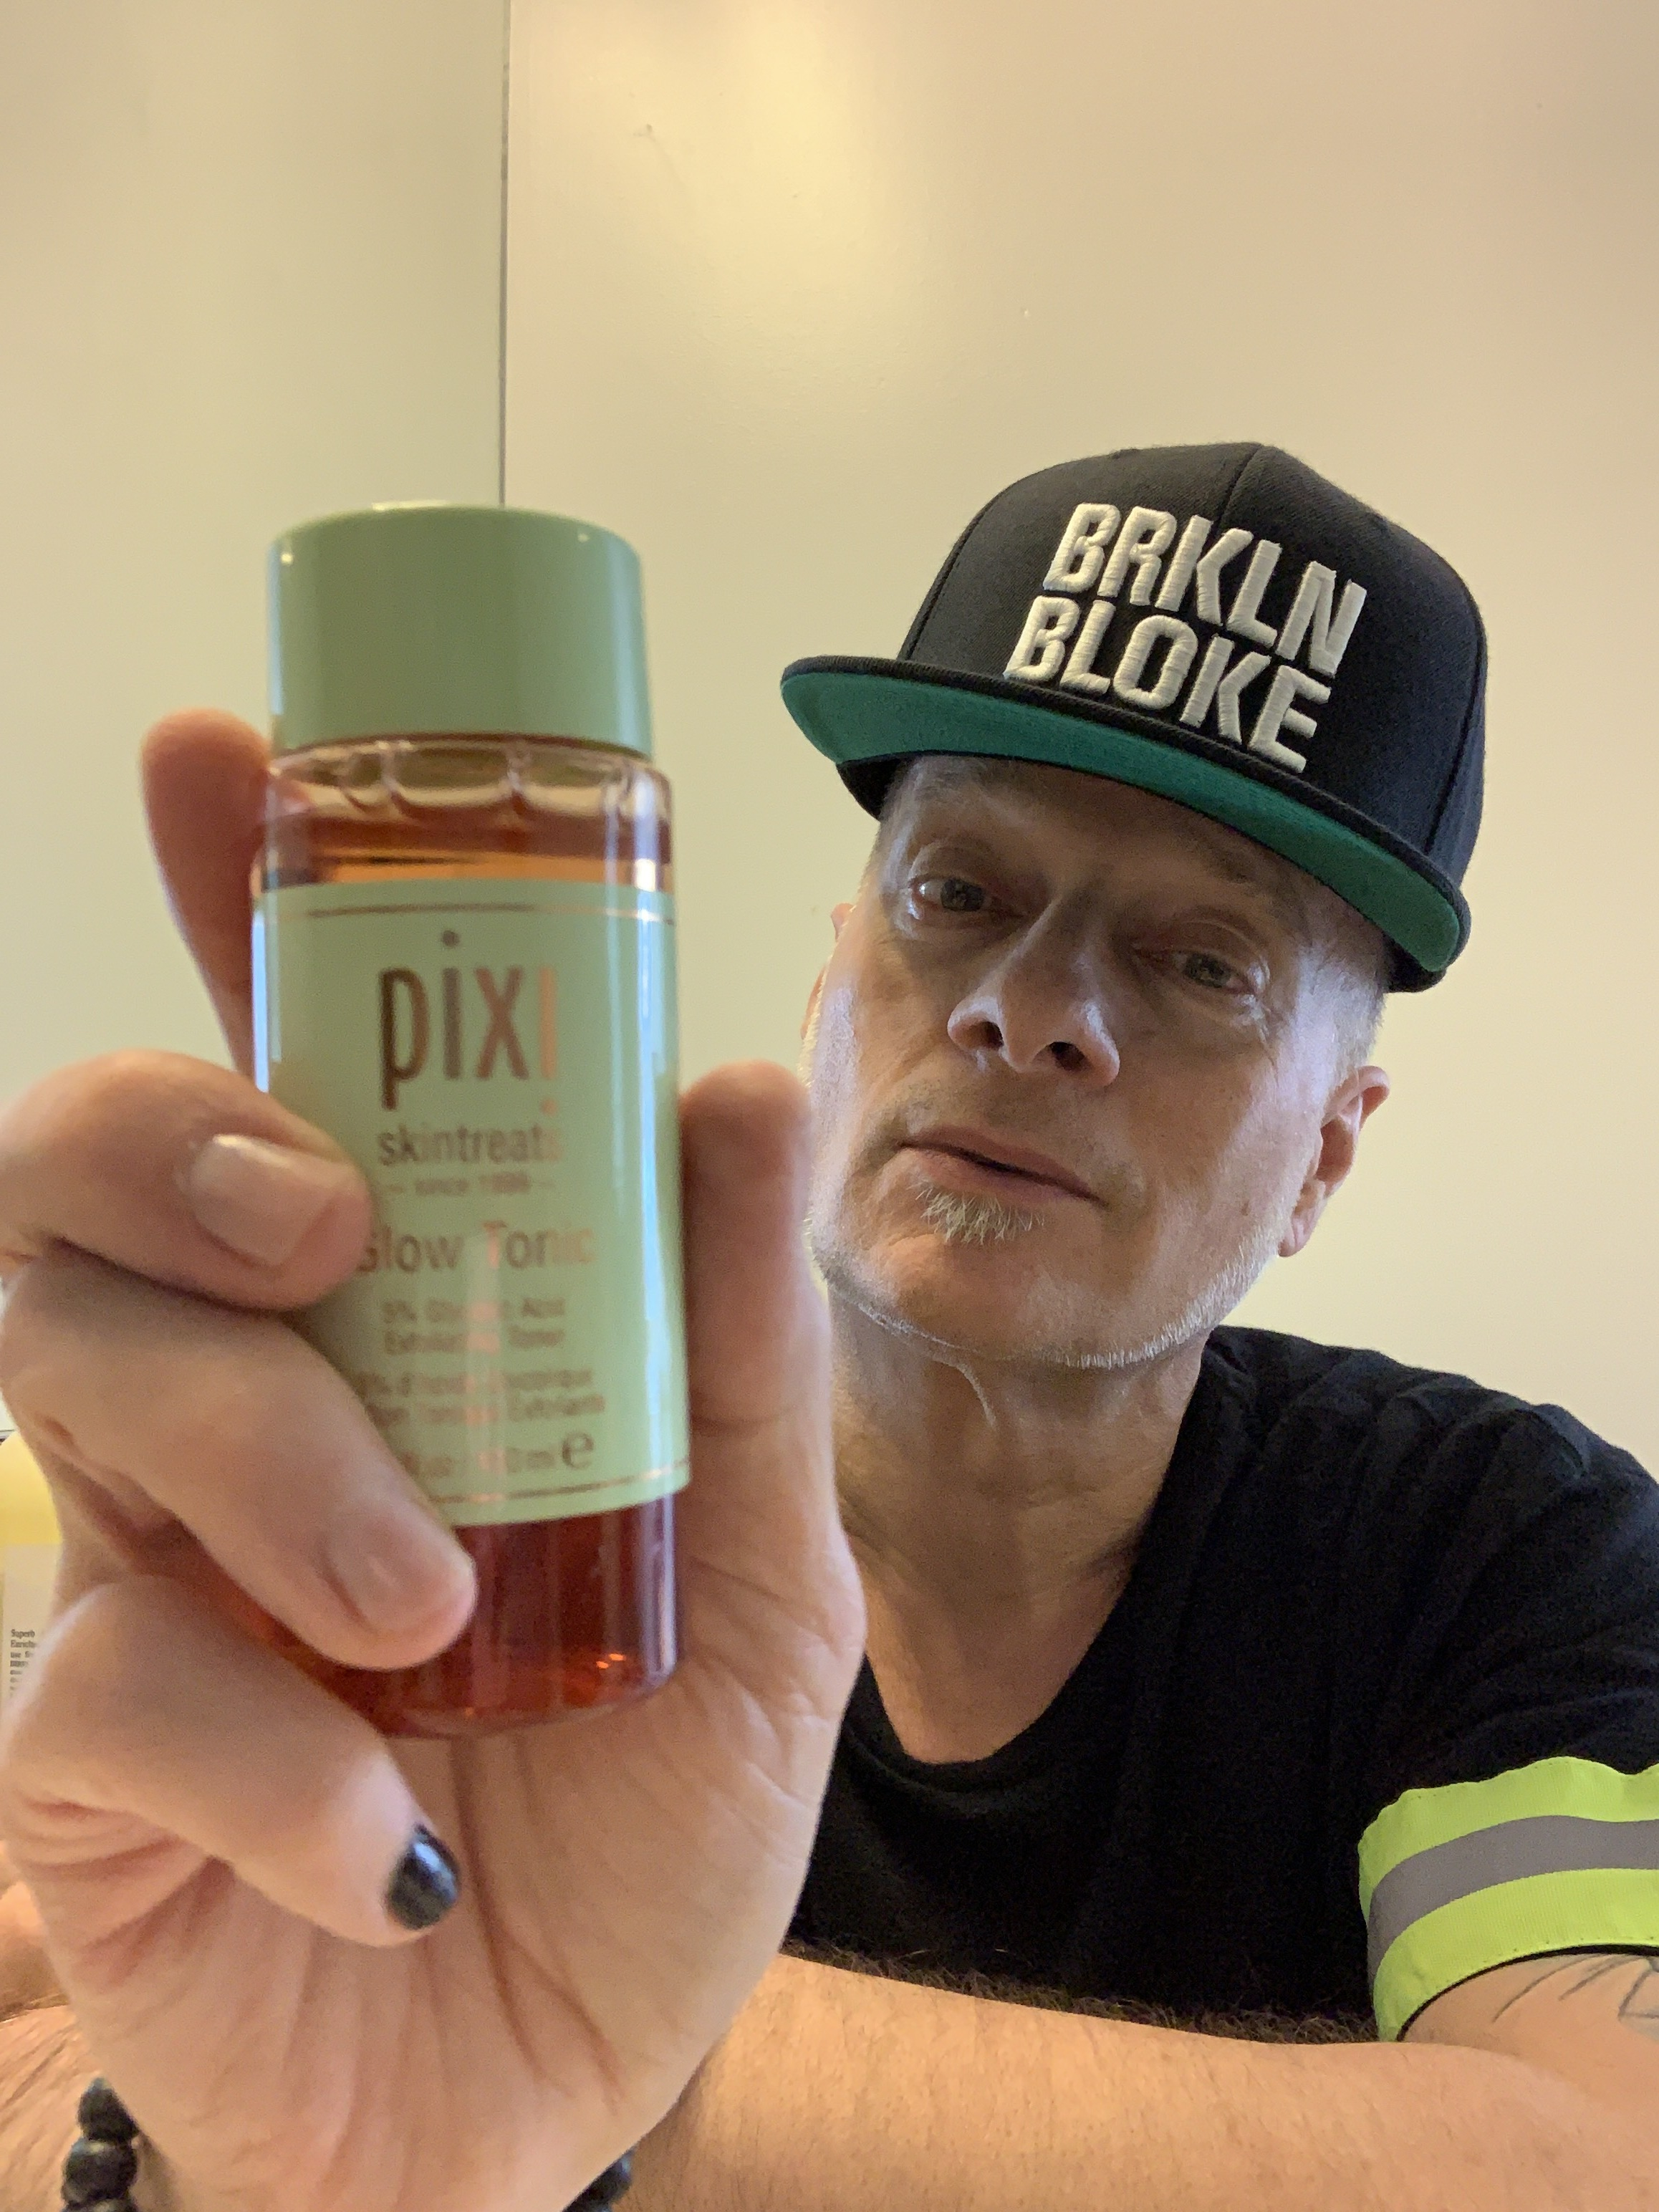 Pixi's Glow Tonic was first introduced more than a decade ago and has inspired many similar toners.